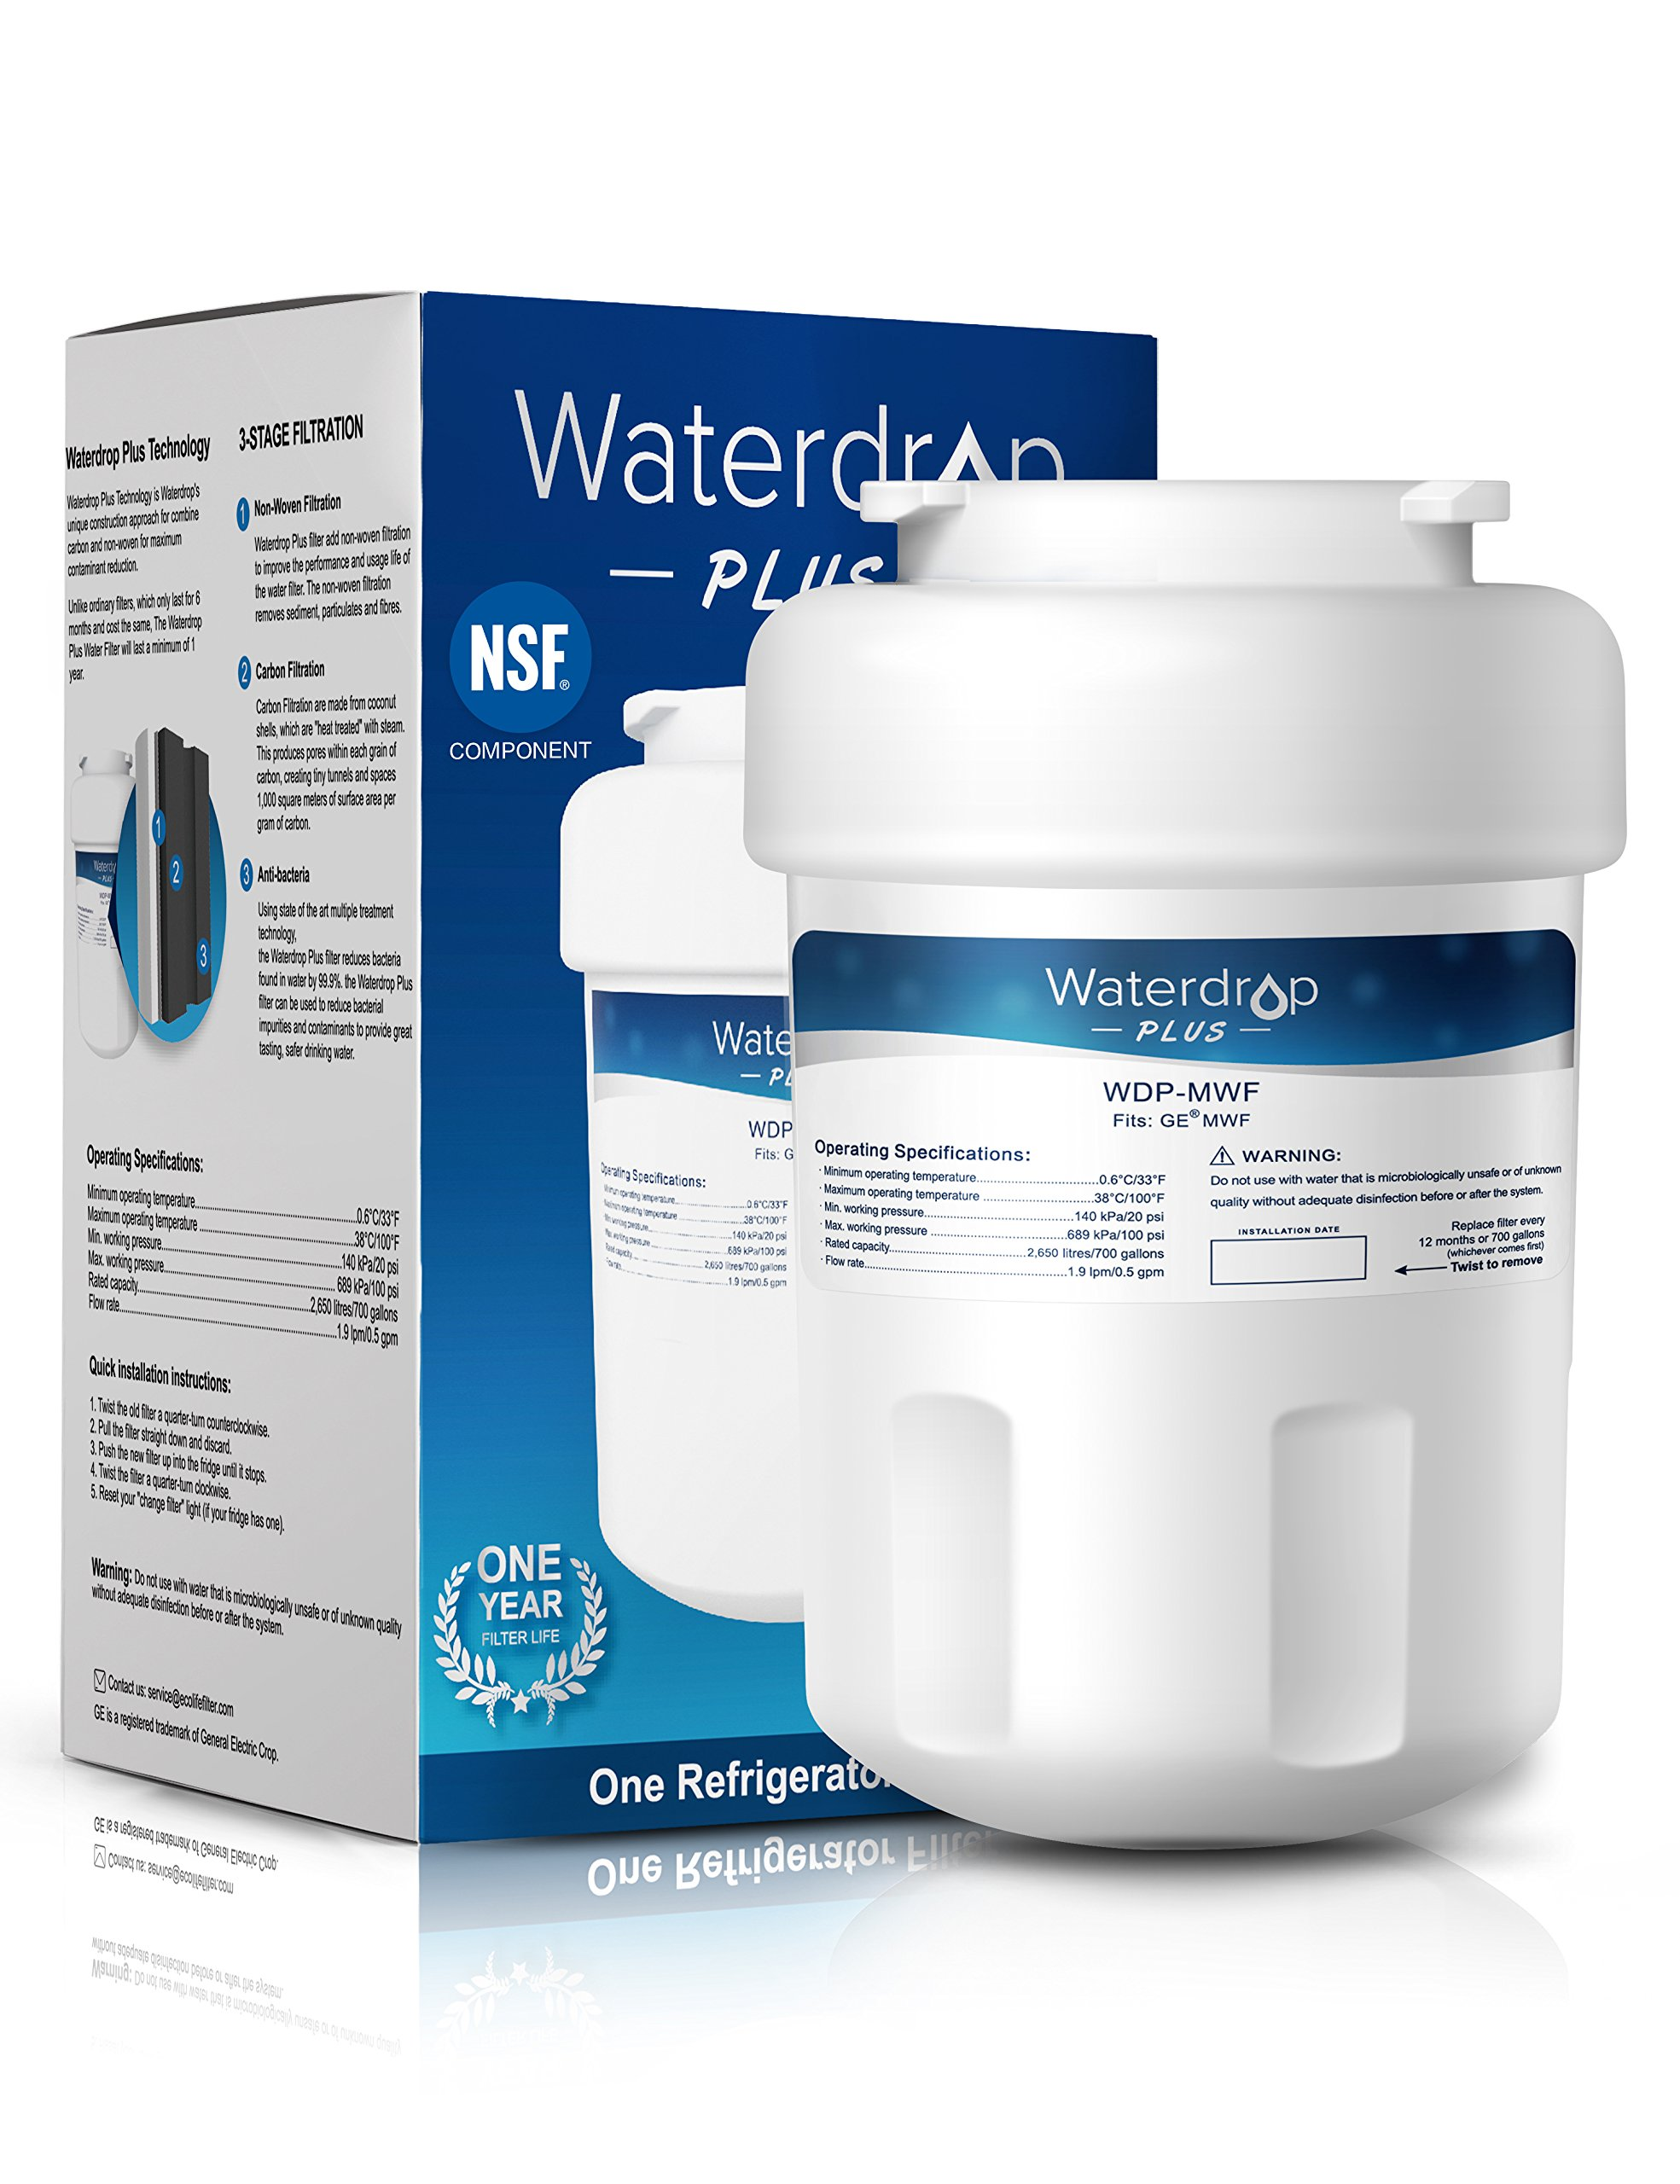 Waterdrop Plus MWF Refrigerator Water Filter Replacement for GE MWF, MWFP, MWFA, GWF, GWFA, SmartWater, Kenmore 9991, 46-9991, 469991 (Double Lifetime)